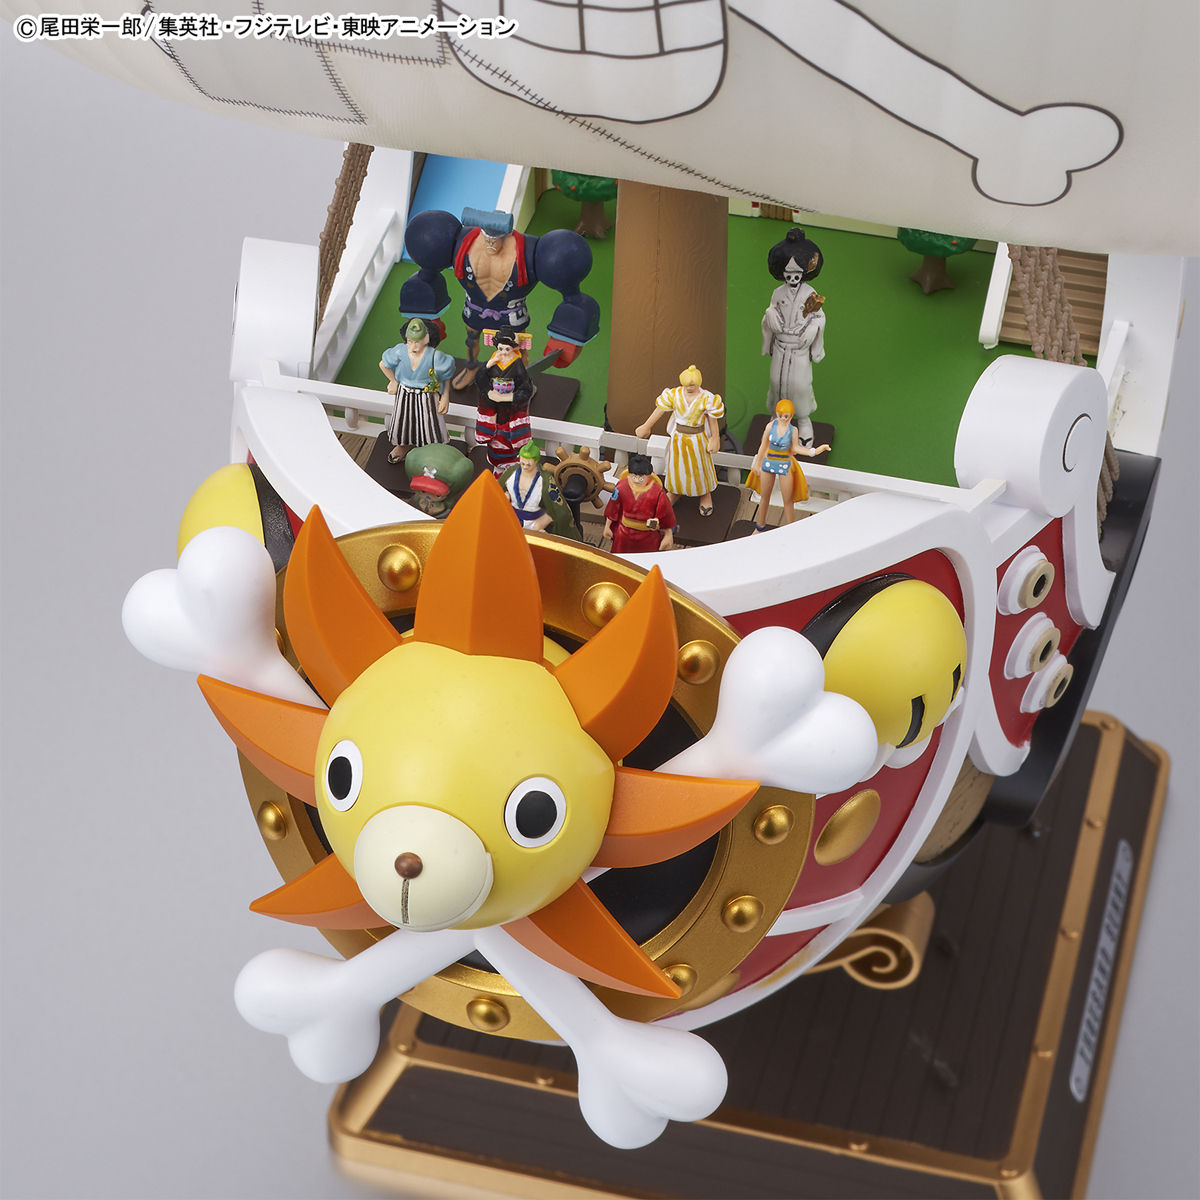 GUNDAM.MY: Thousand Sunny Land of Wano Ver. (image uploaded)